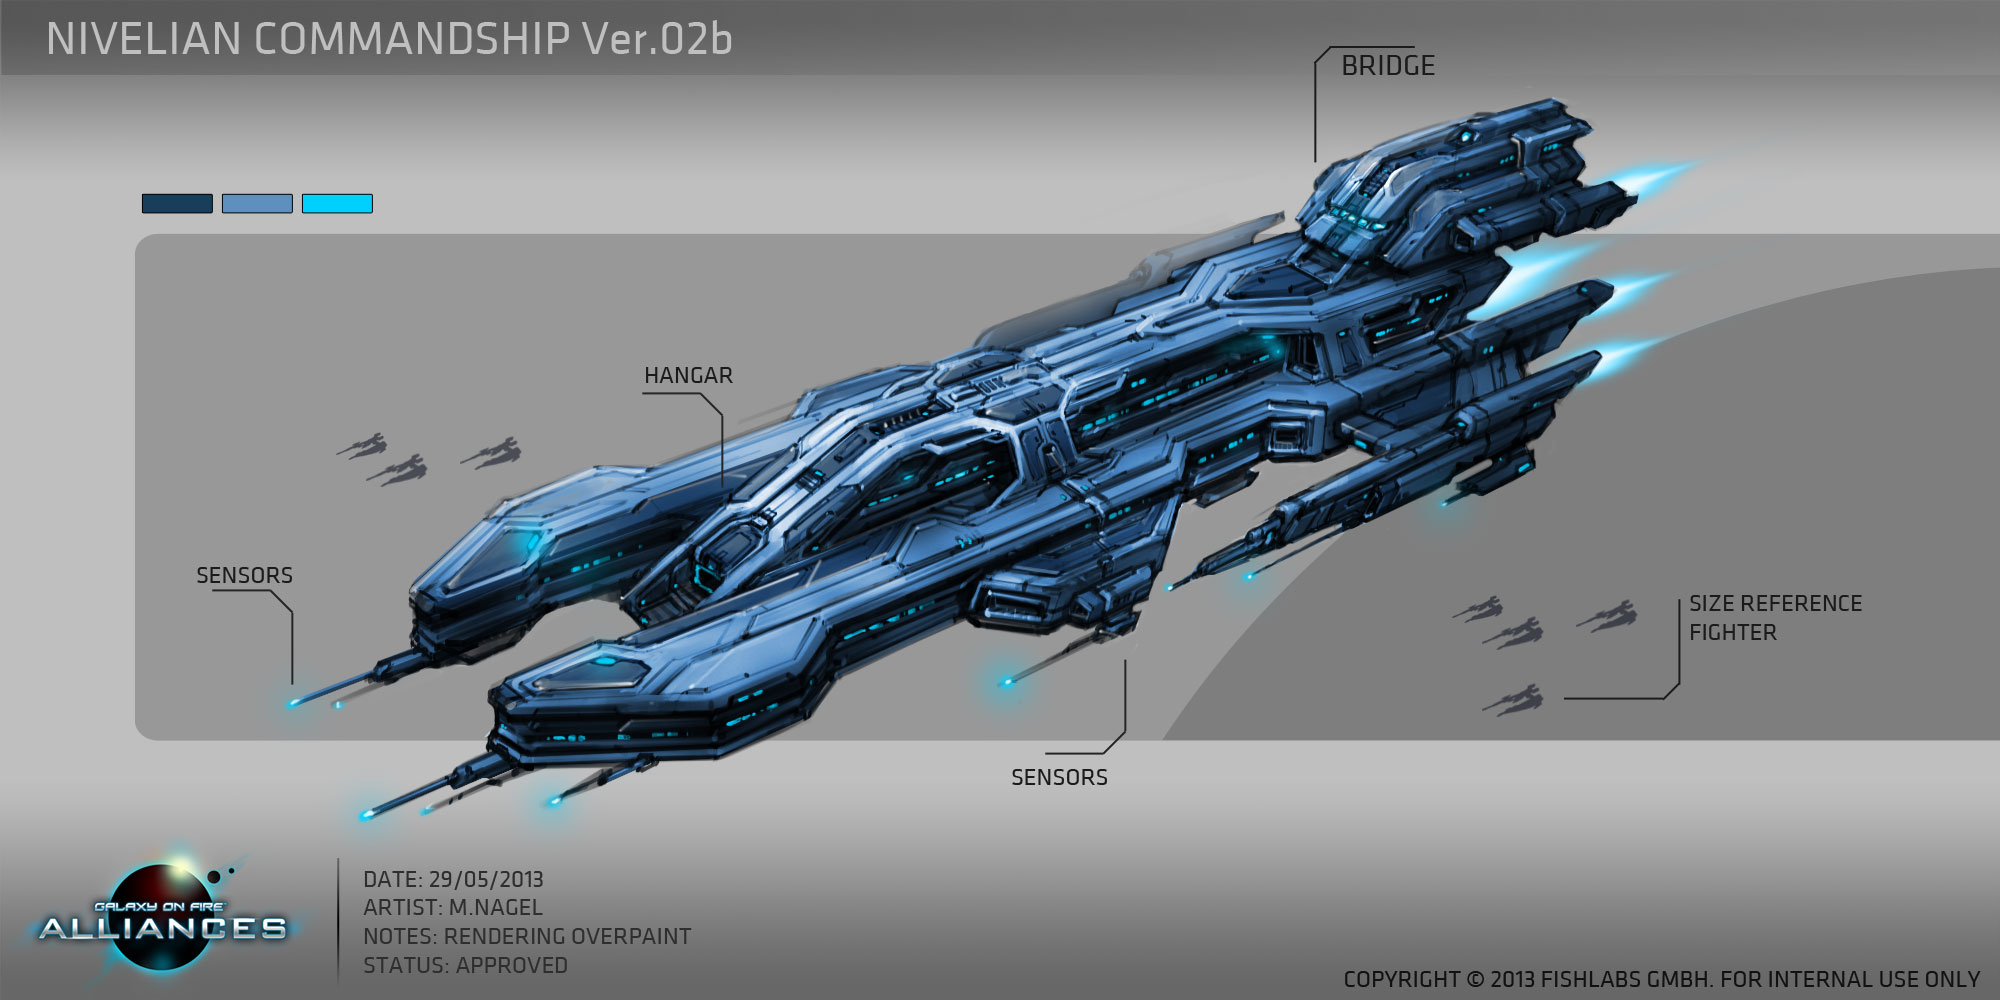 Fishlabs-galaxy-on-fire-alliances-concept-artwork-NIVELIAN-CARRIER-02